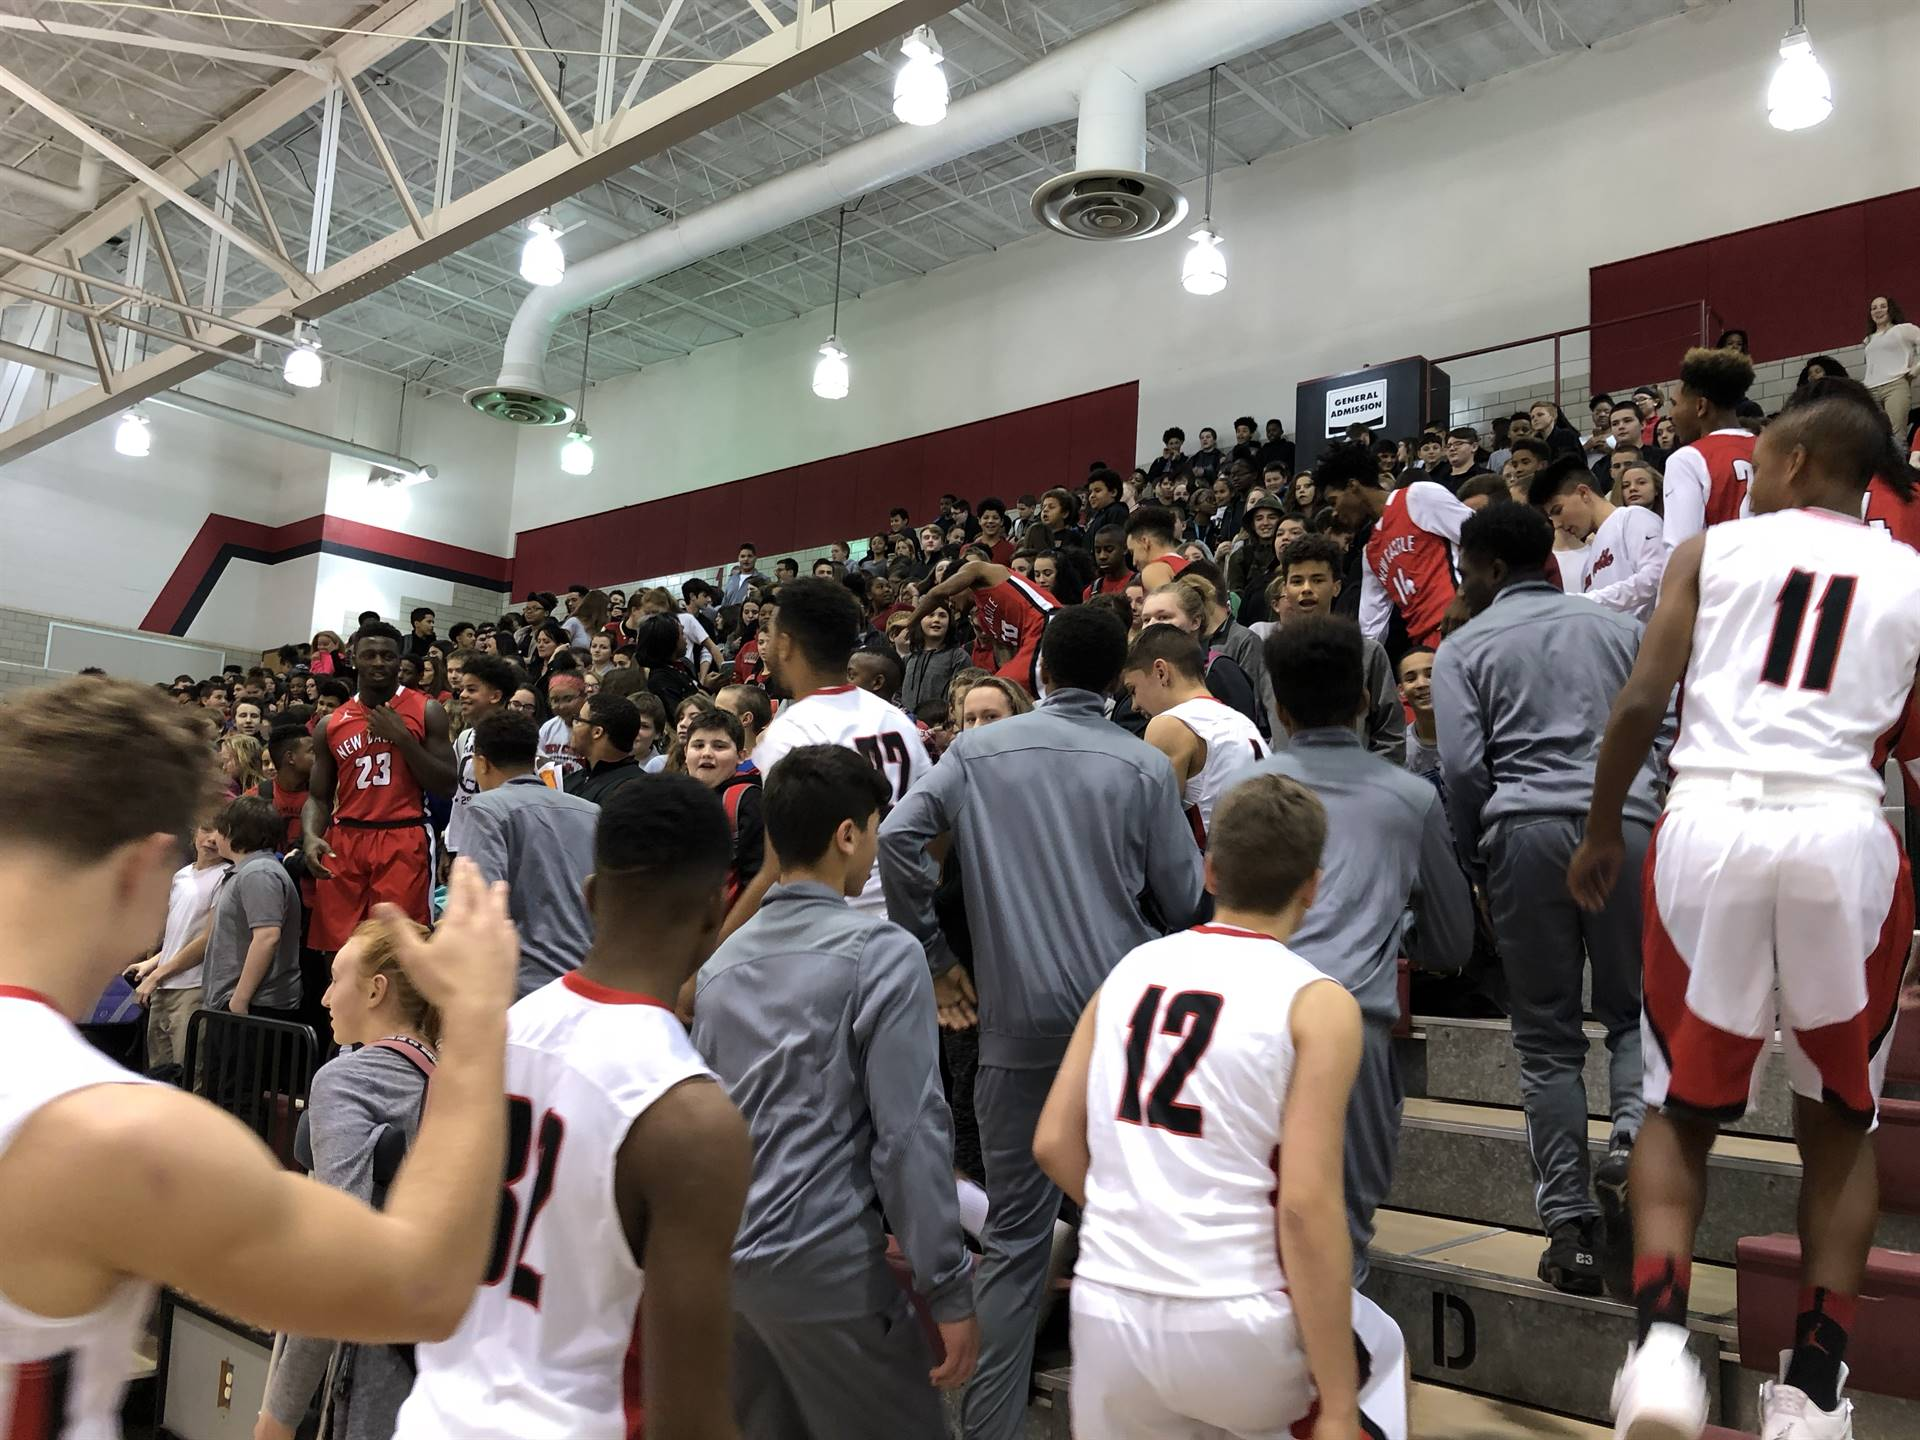 The 2017 Red Hurricanes lead the crowd in a cheer